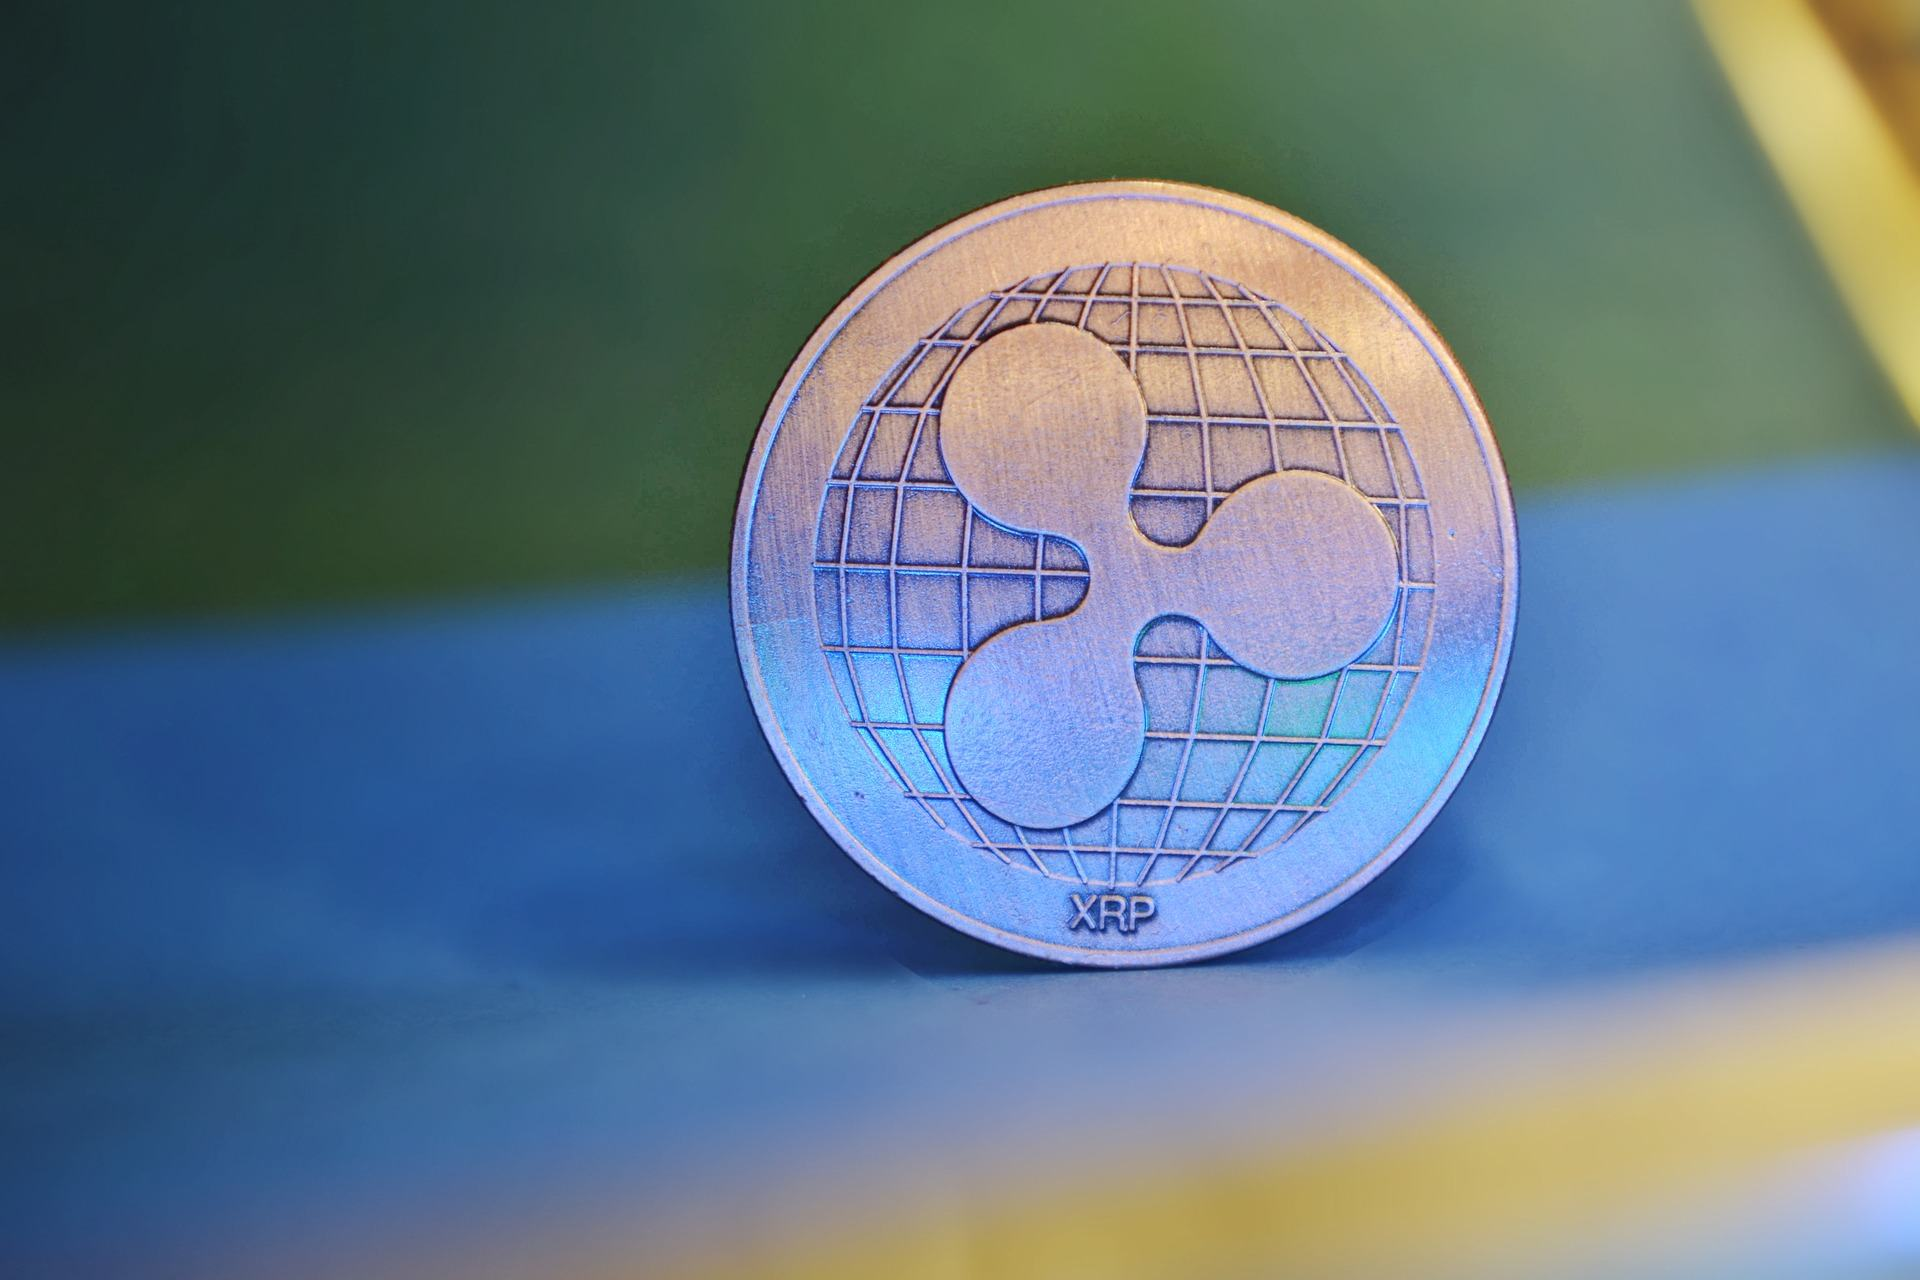 XRP Hits $1.76 for 1st Time Since April 16, Analyst Says Top Is in $20 – $30 Range